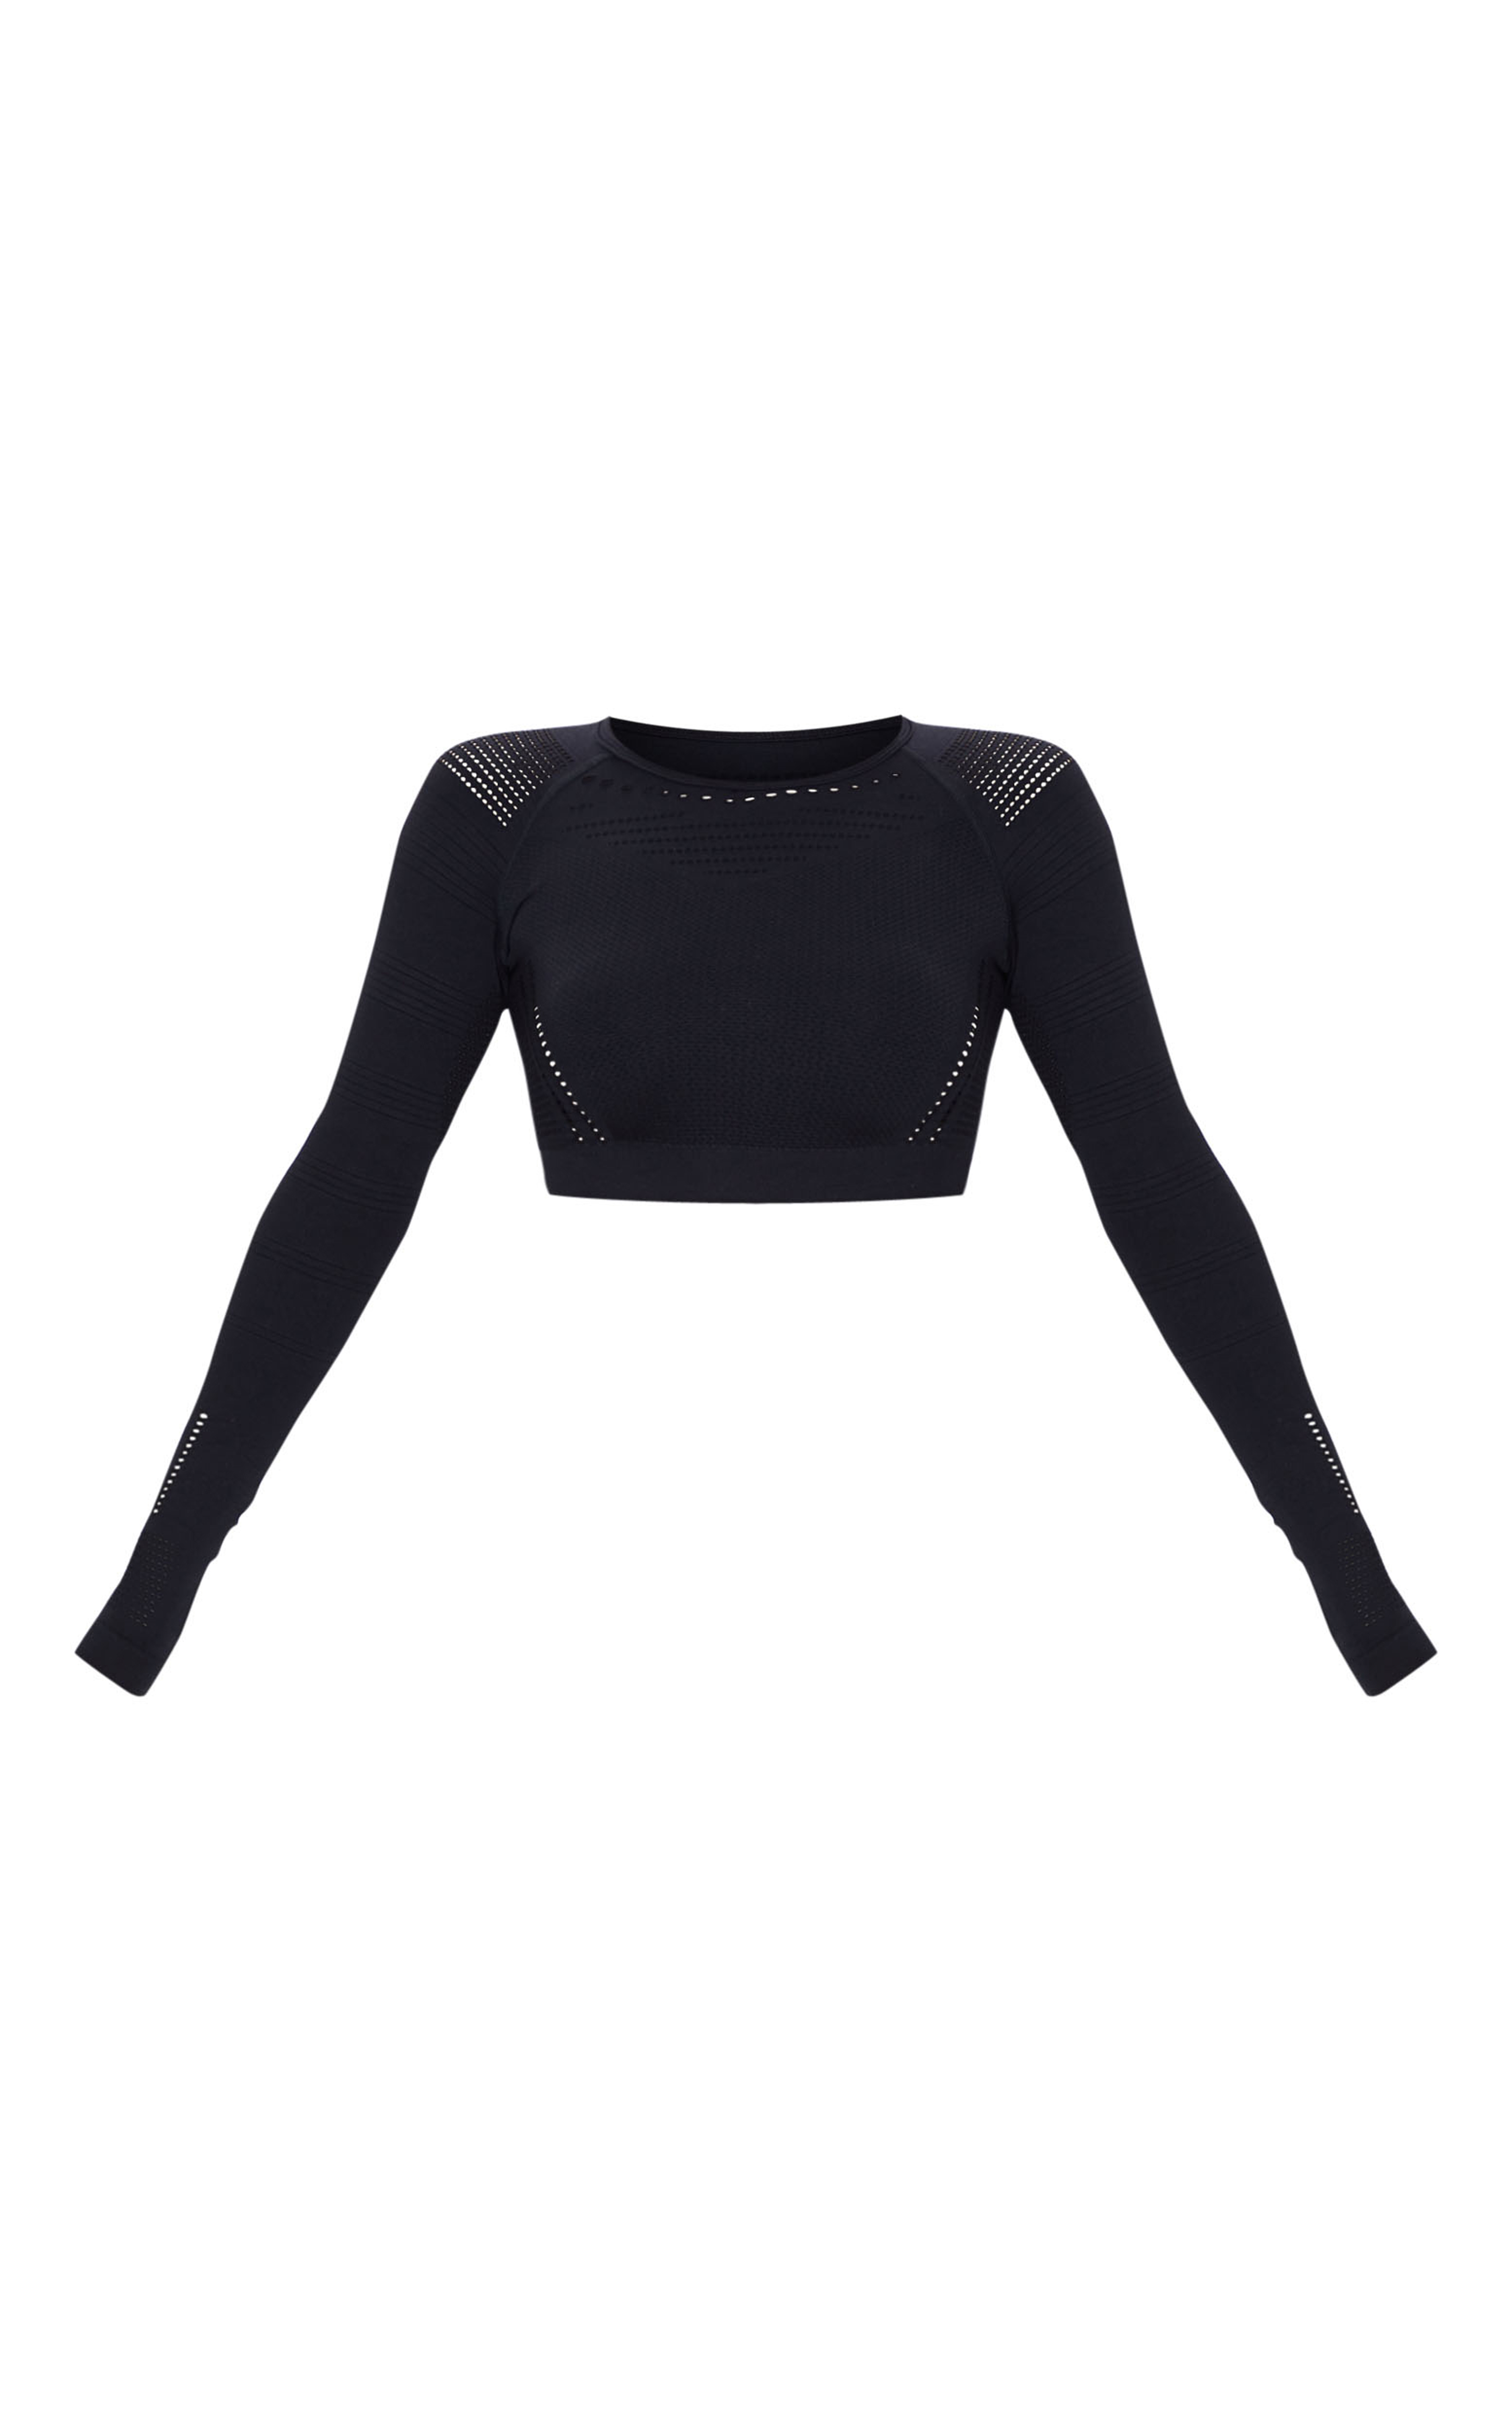 PRETTYLITTLETHING Black Long Sleeve Cut Out Seamless Top 4